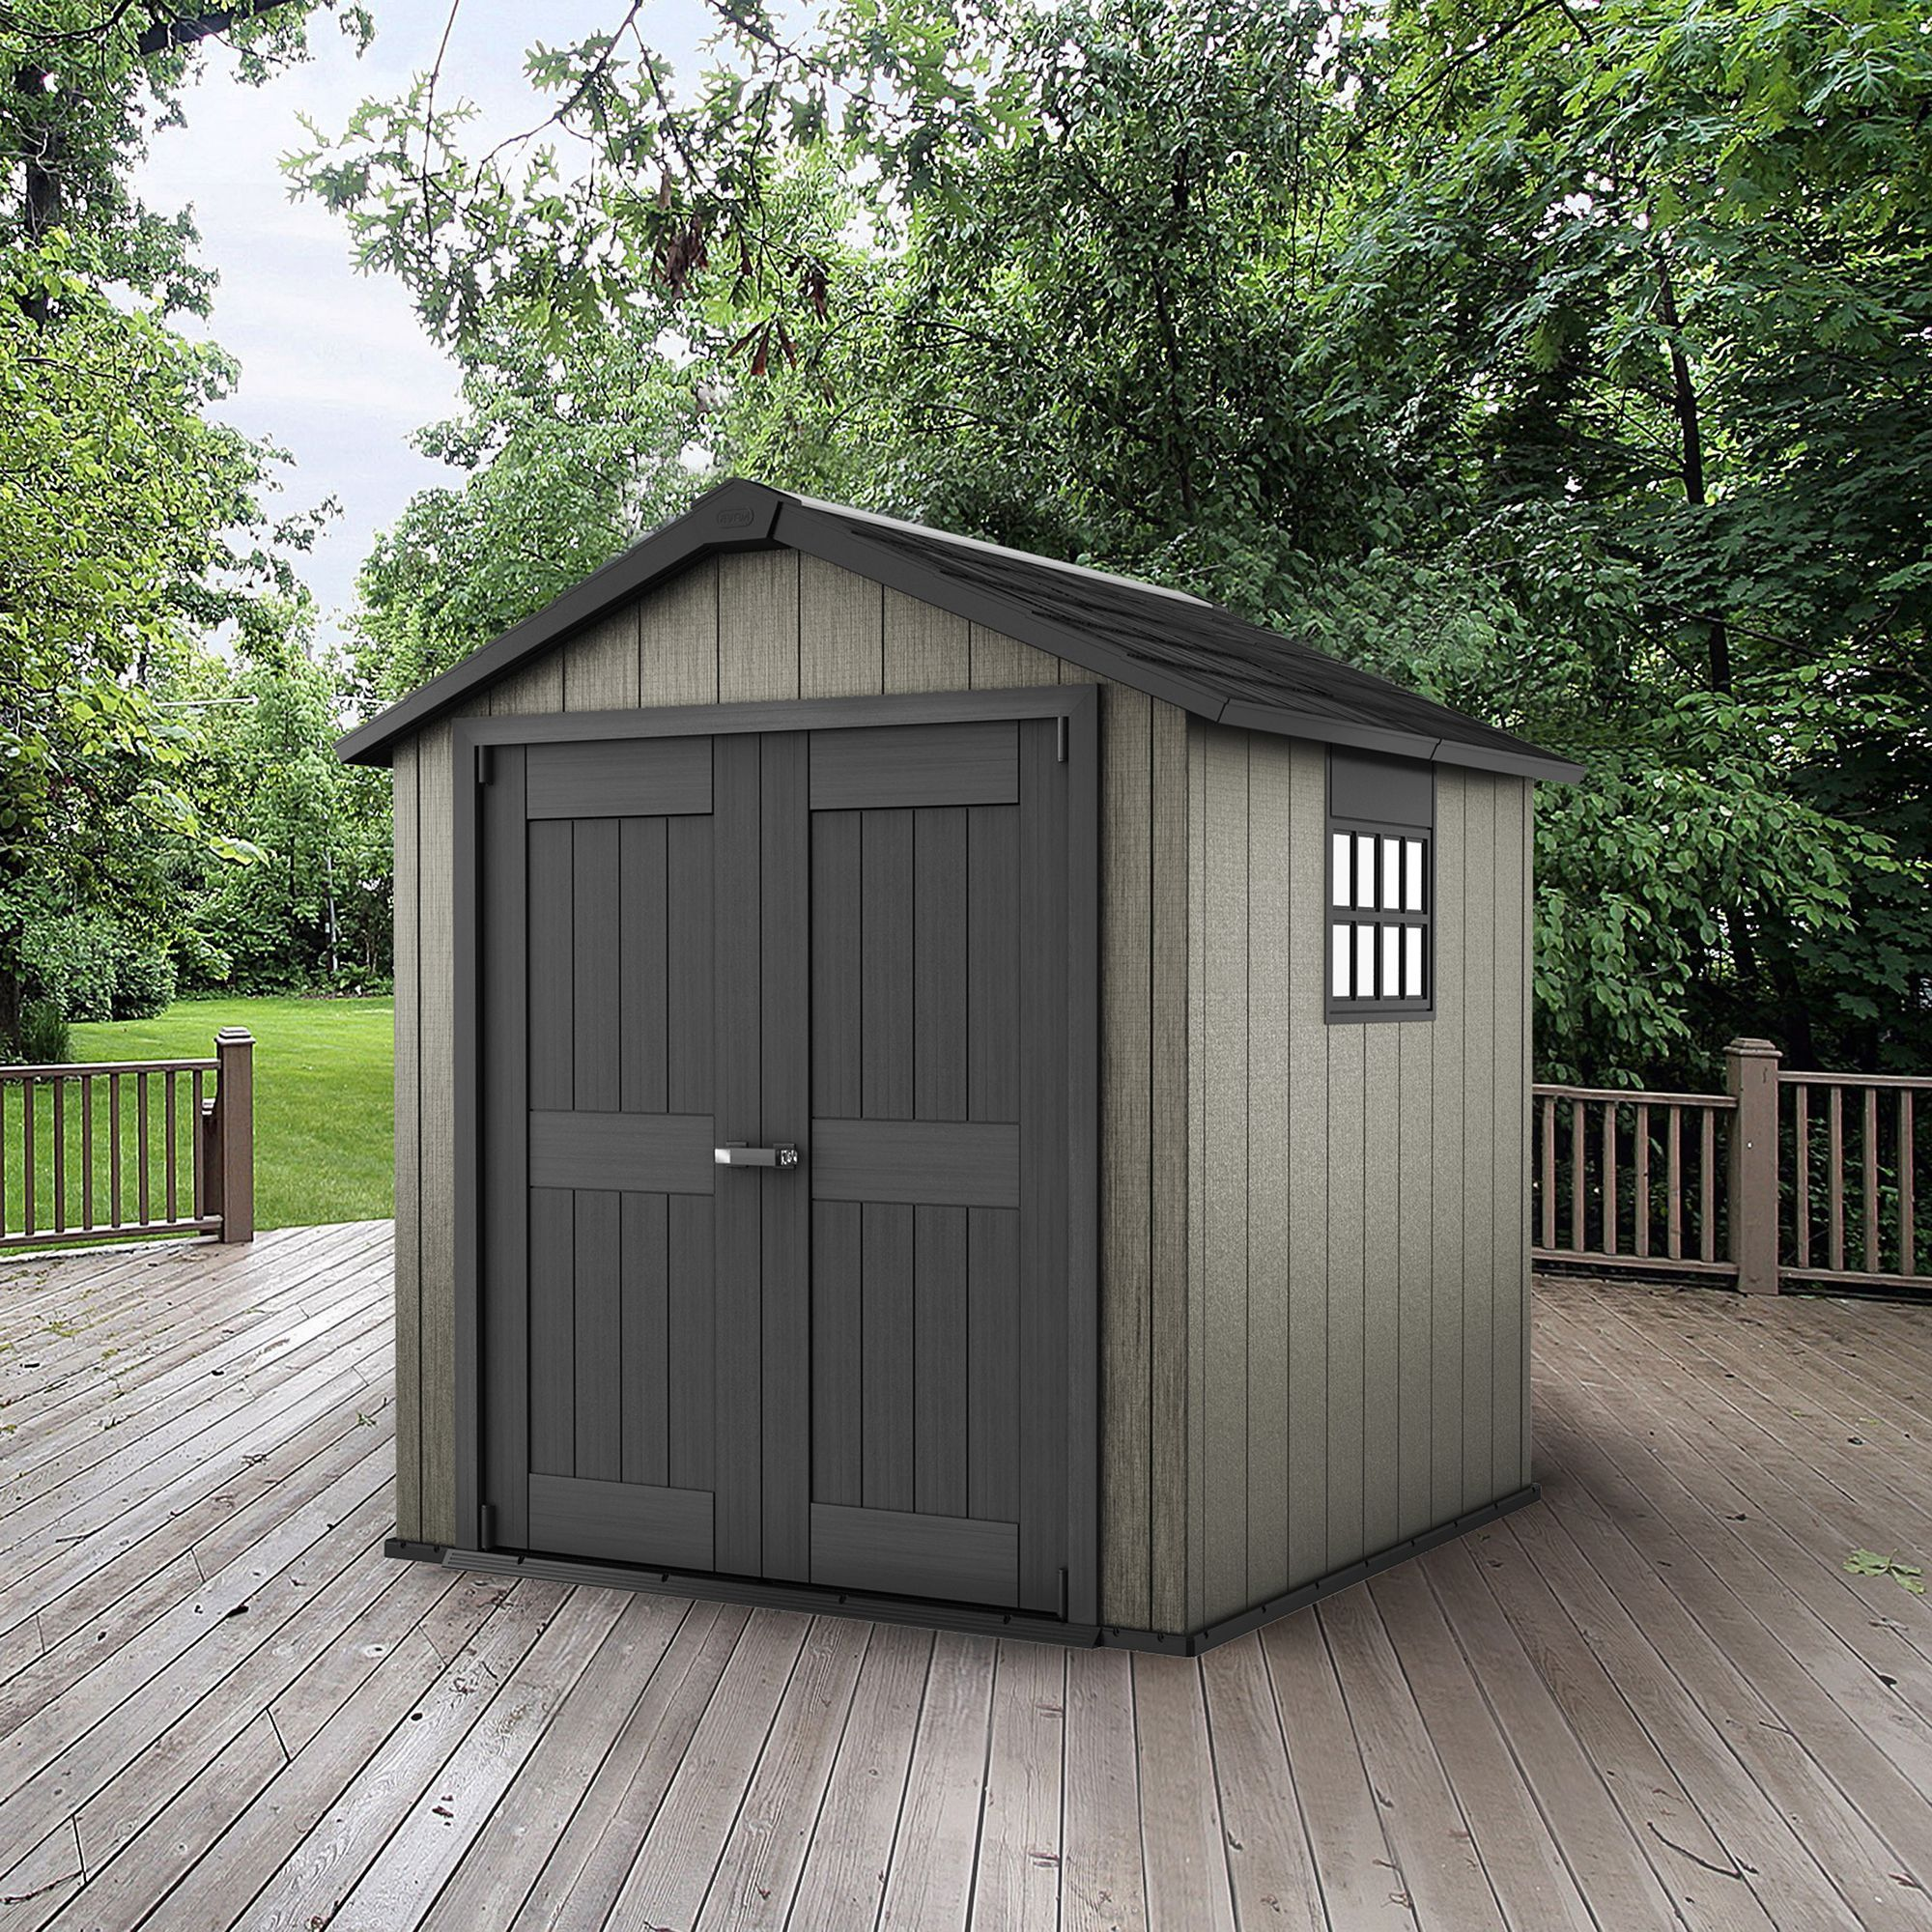 Garden Sheds 7x7 7x7 keter apex double wall resin plastic & metal shed